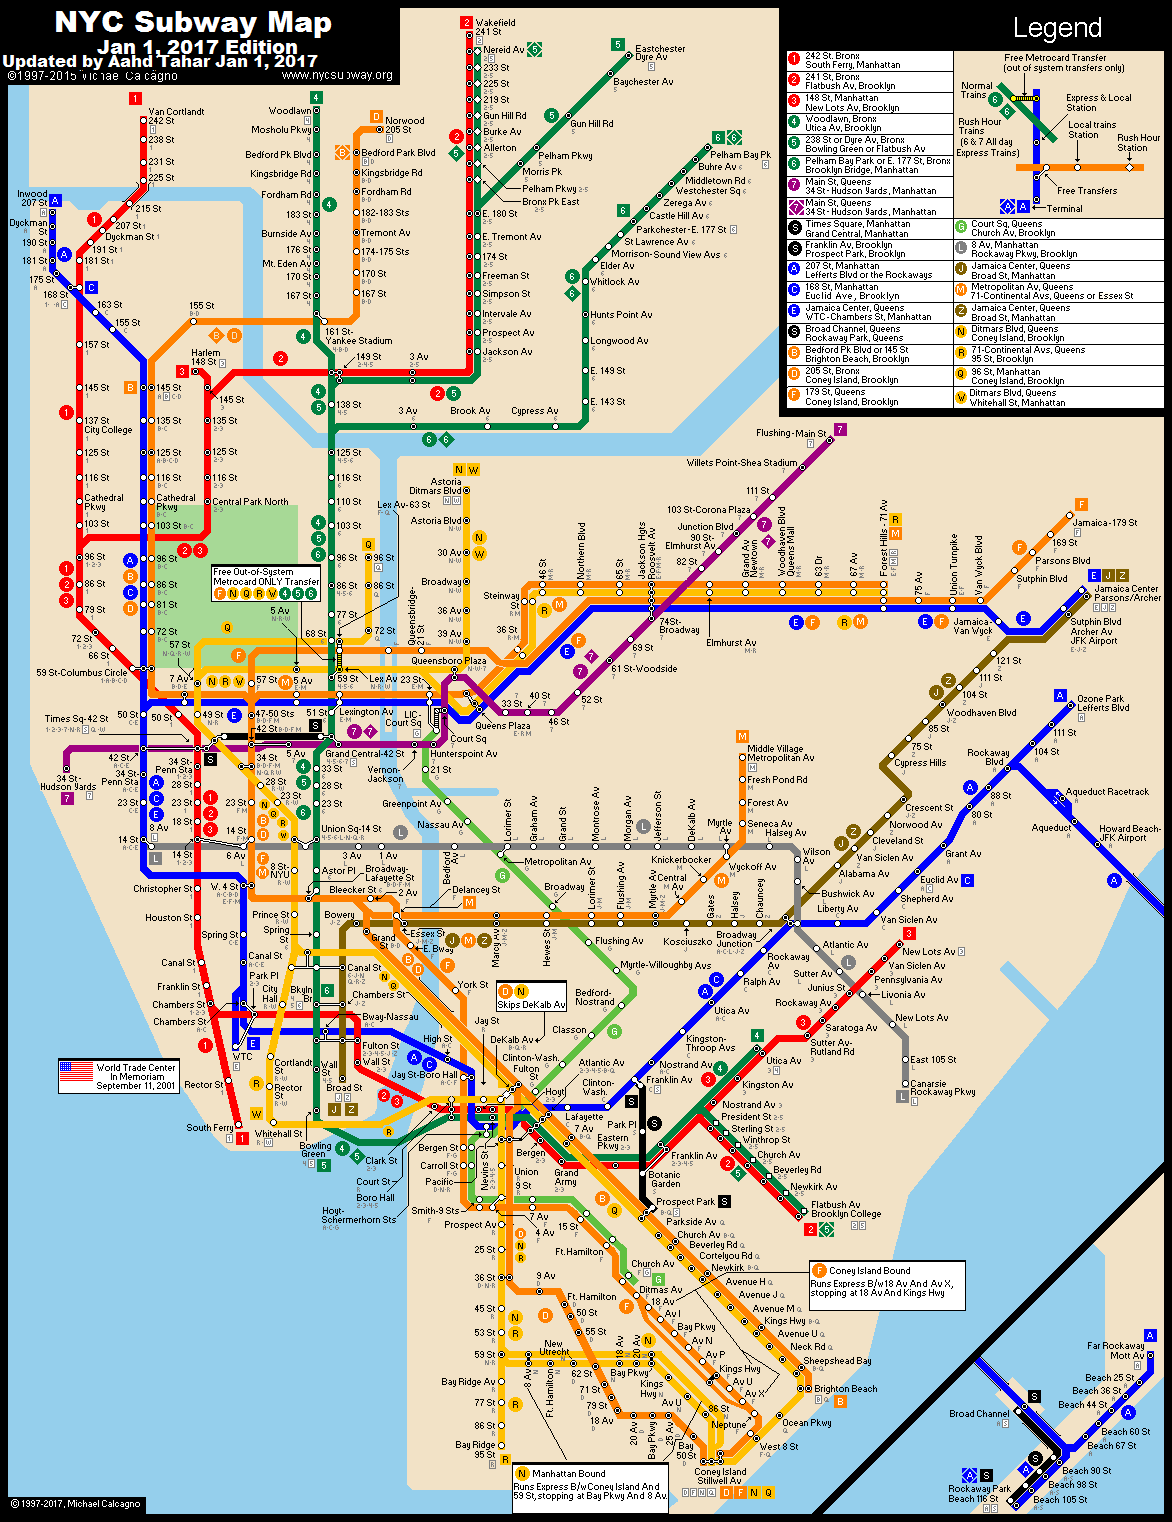 calcagnopng. wwwnycsubwayorg new york city subway route map by michael calcagno